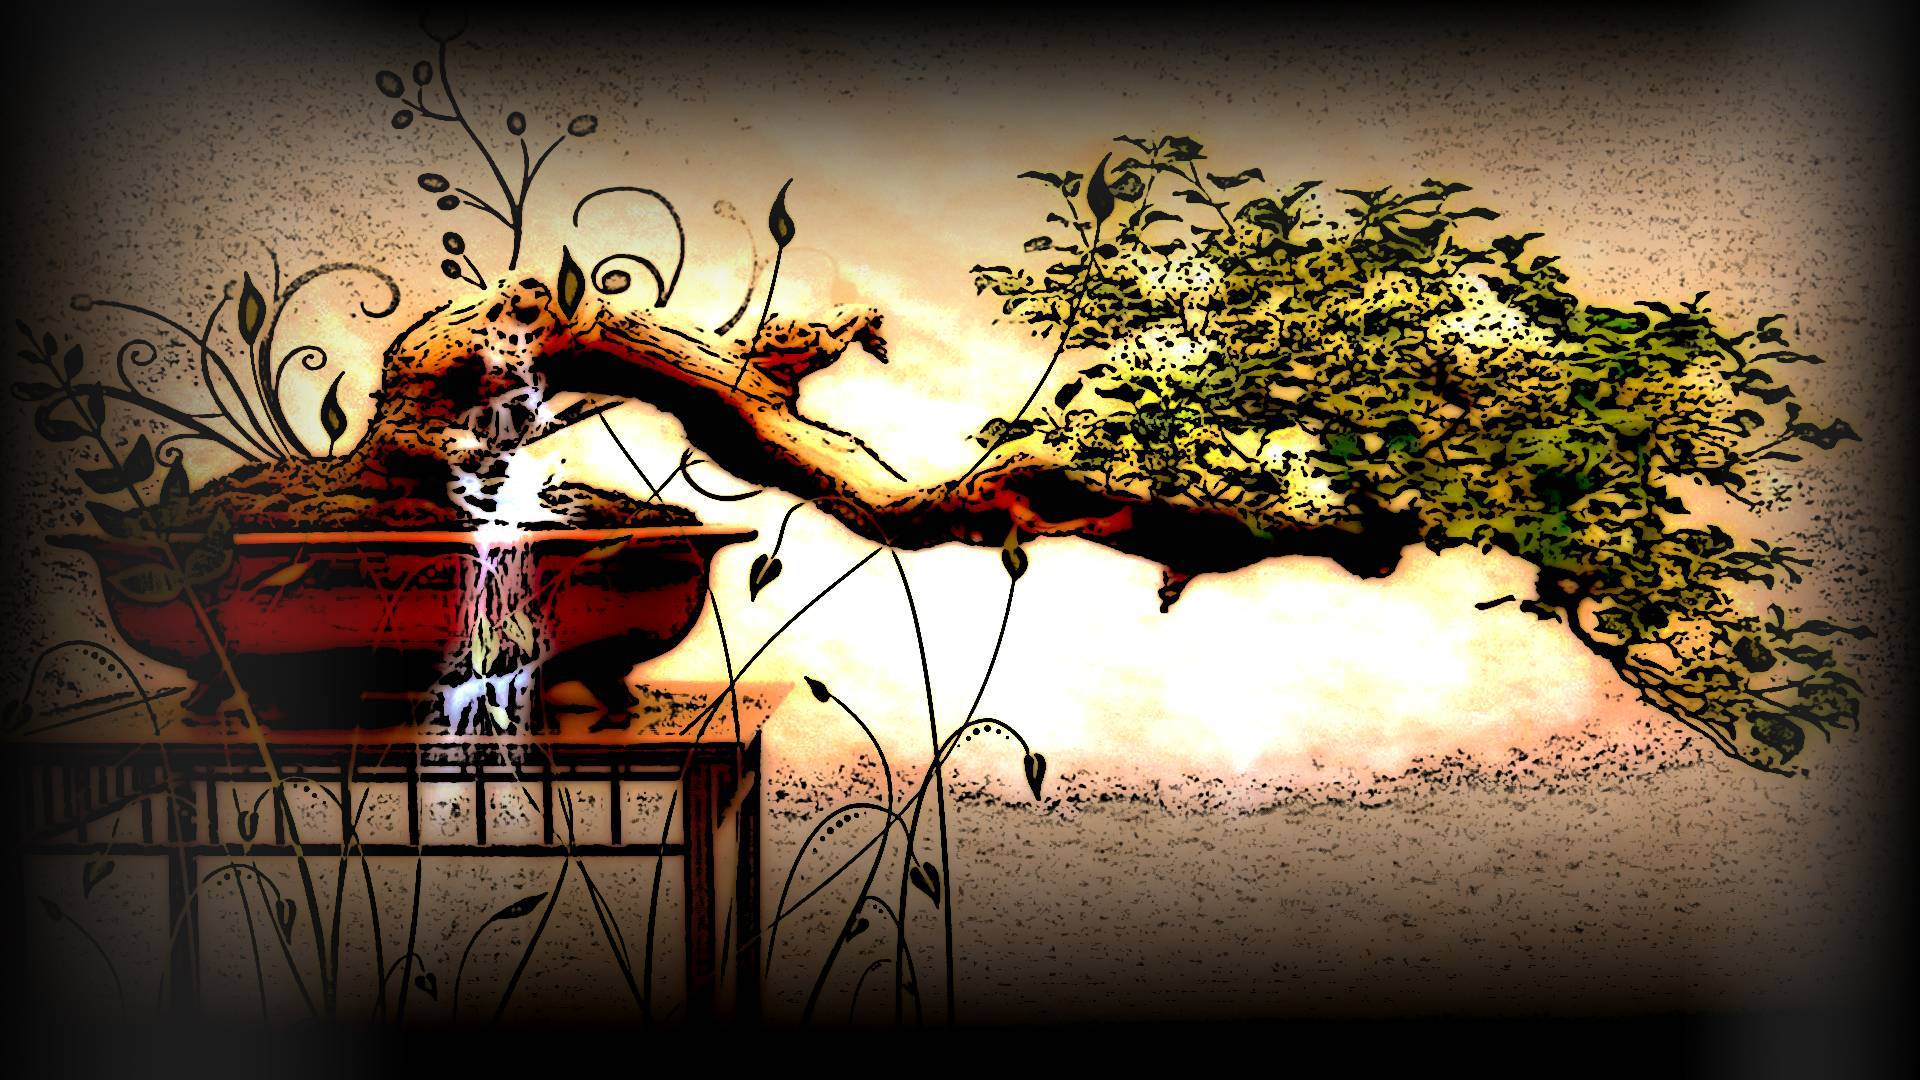 Bonsai Tree Wallpaper by PlanetaryPenguin on DeviantArt